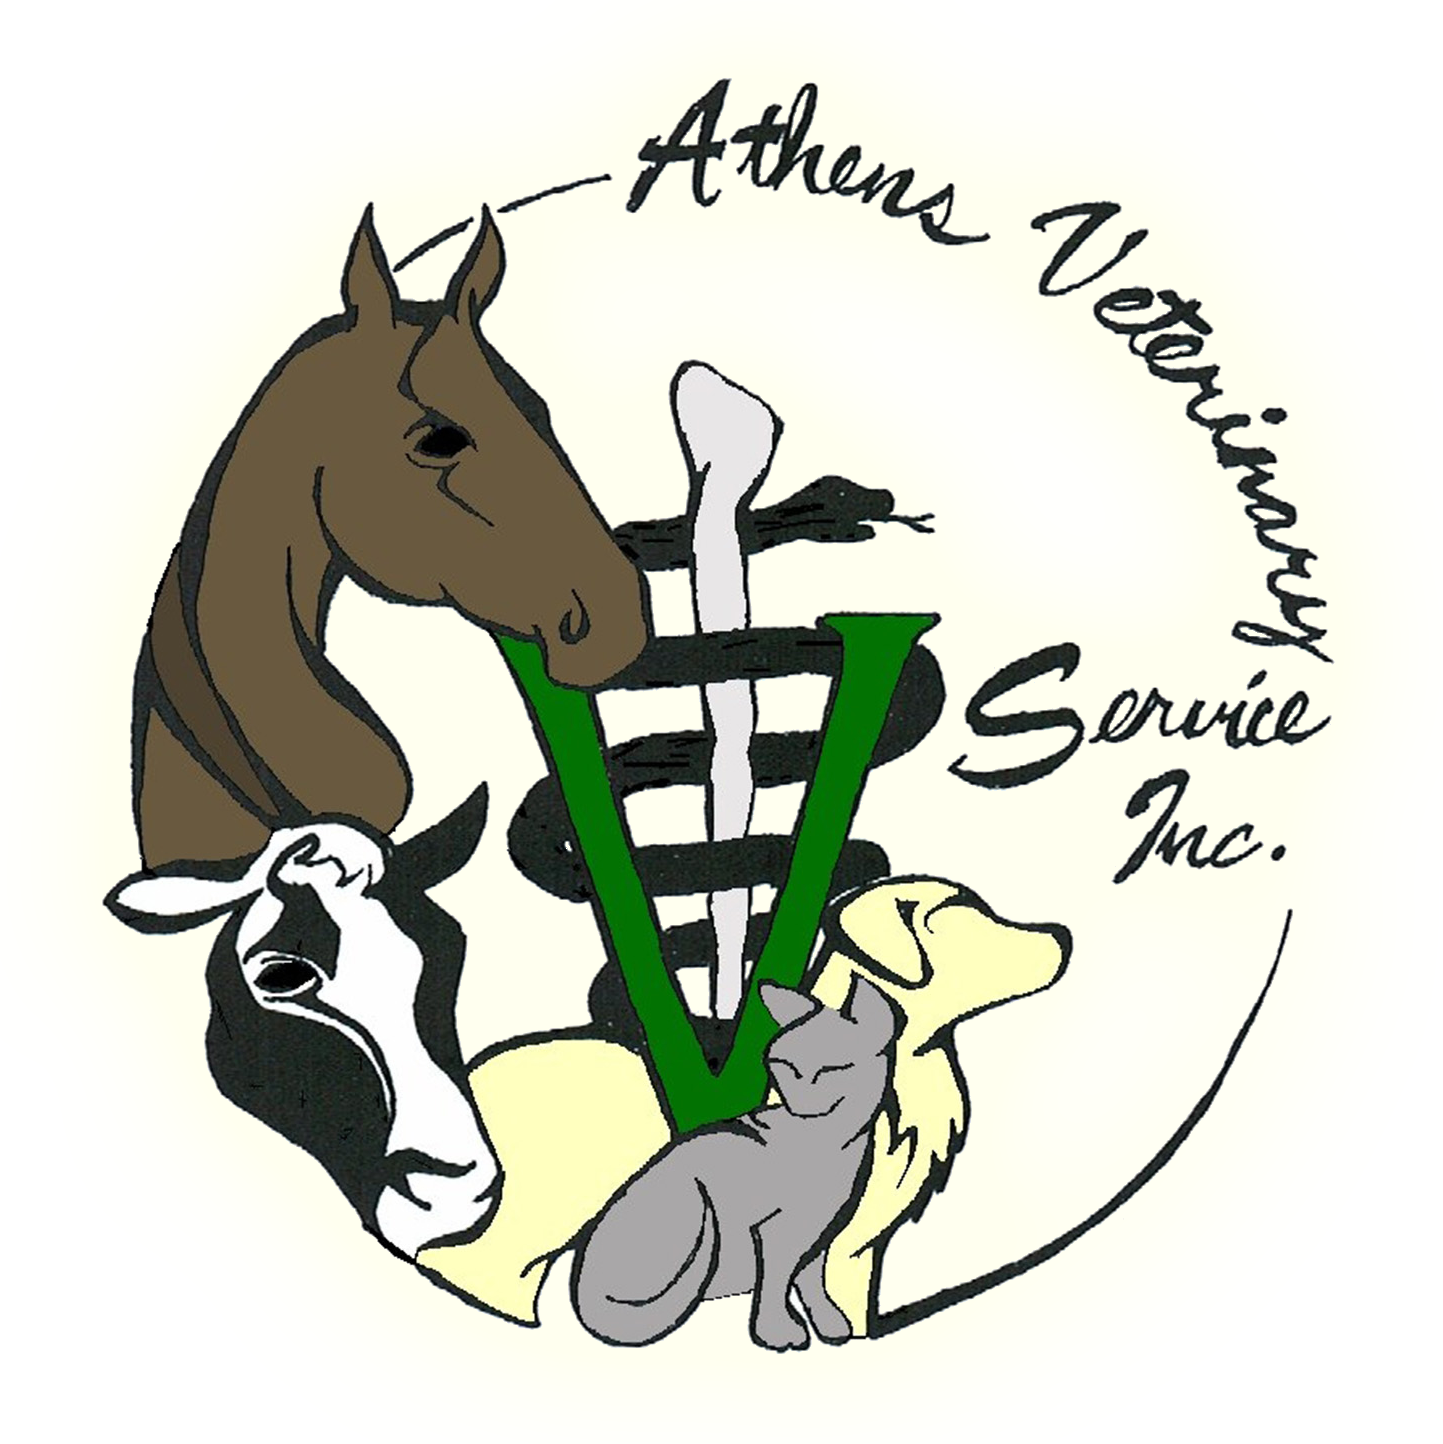 Clipart cow vet. Athens veterinary service inc